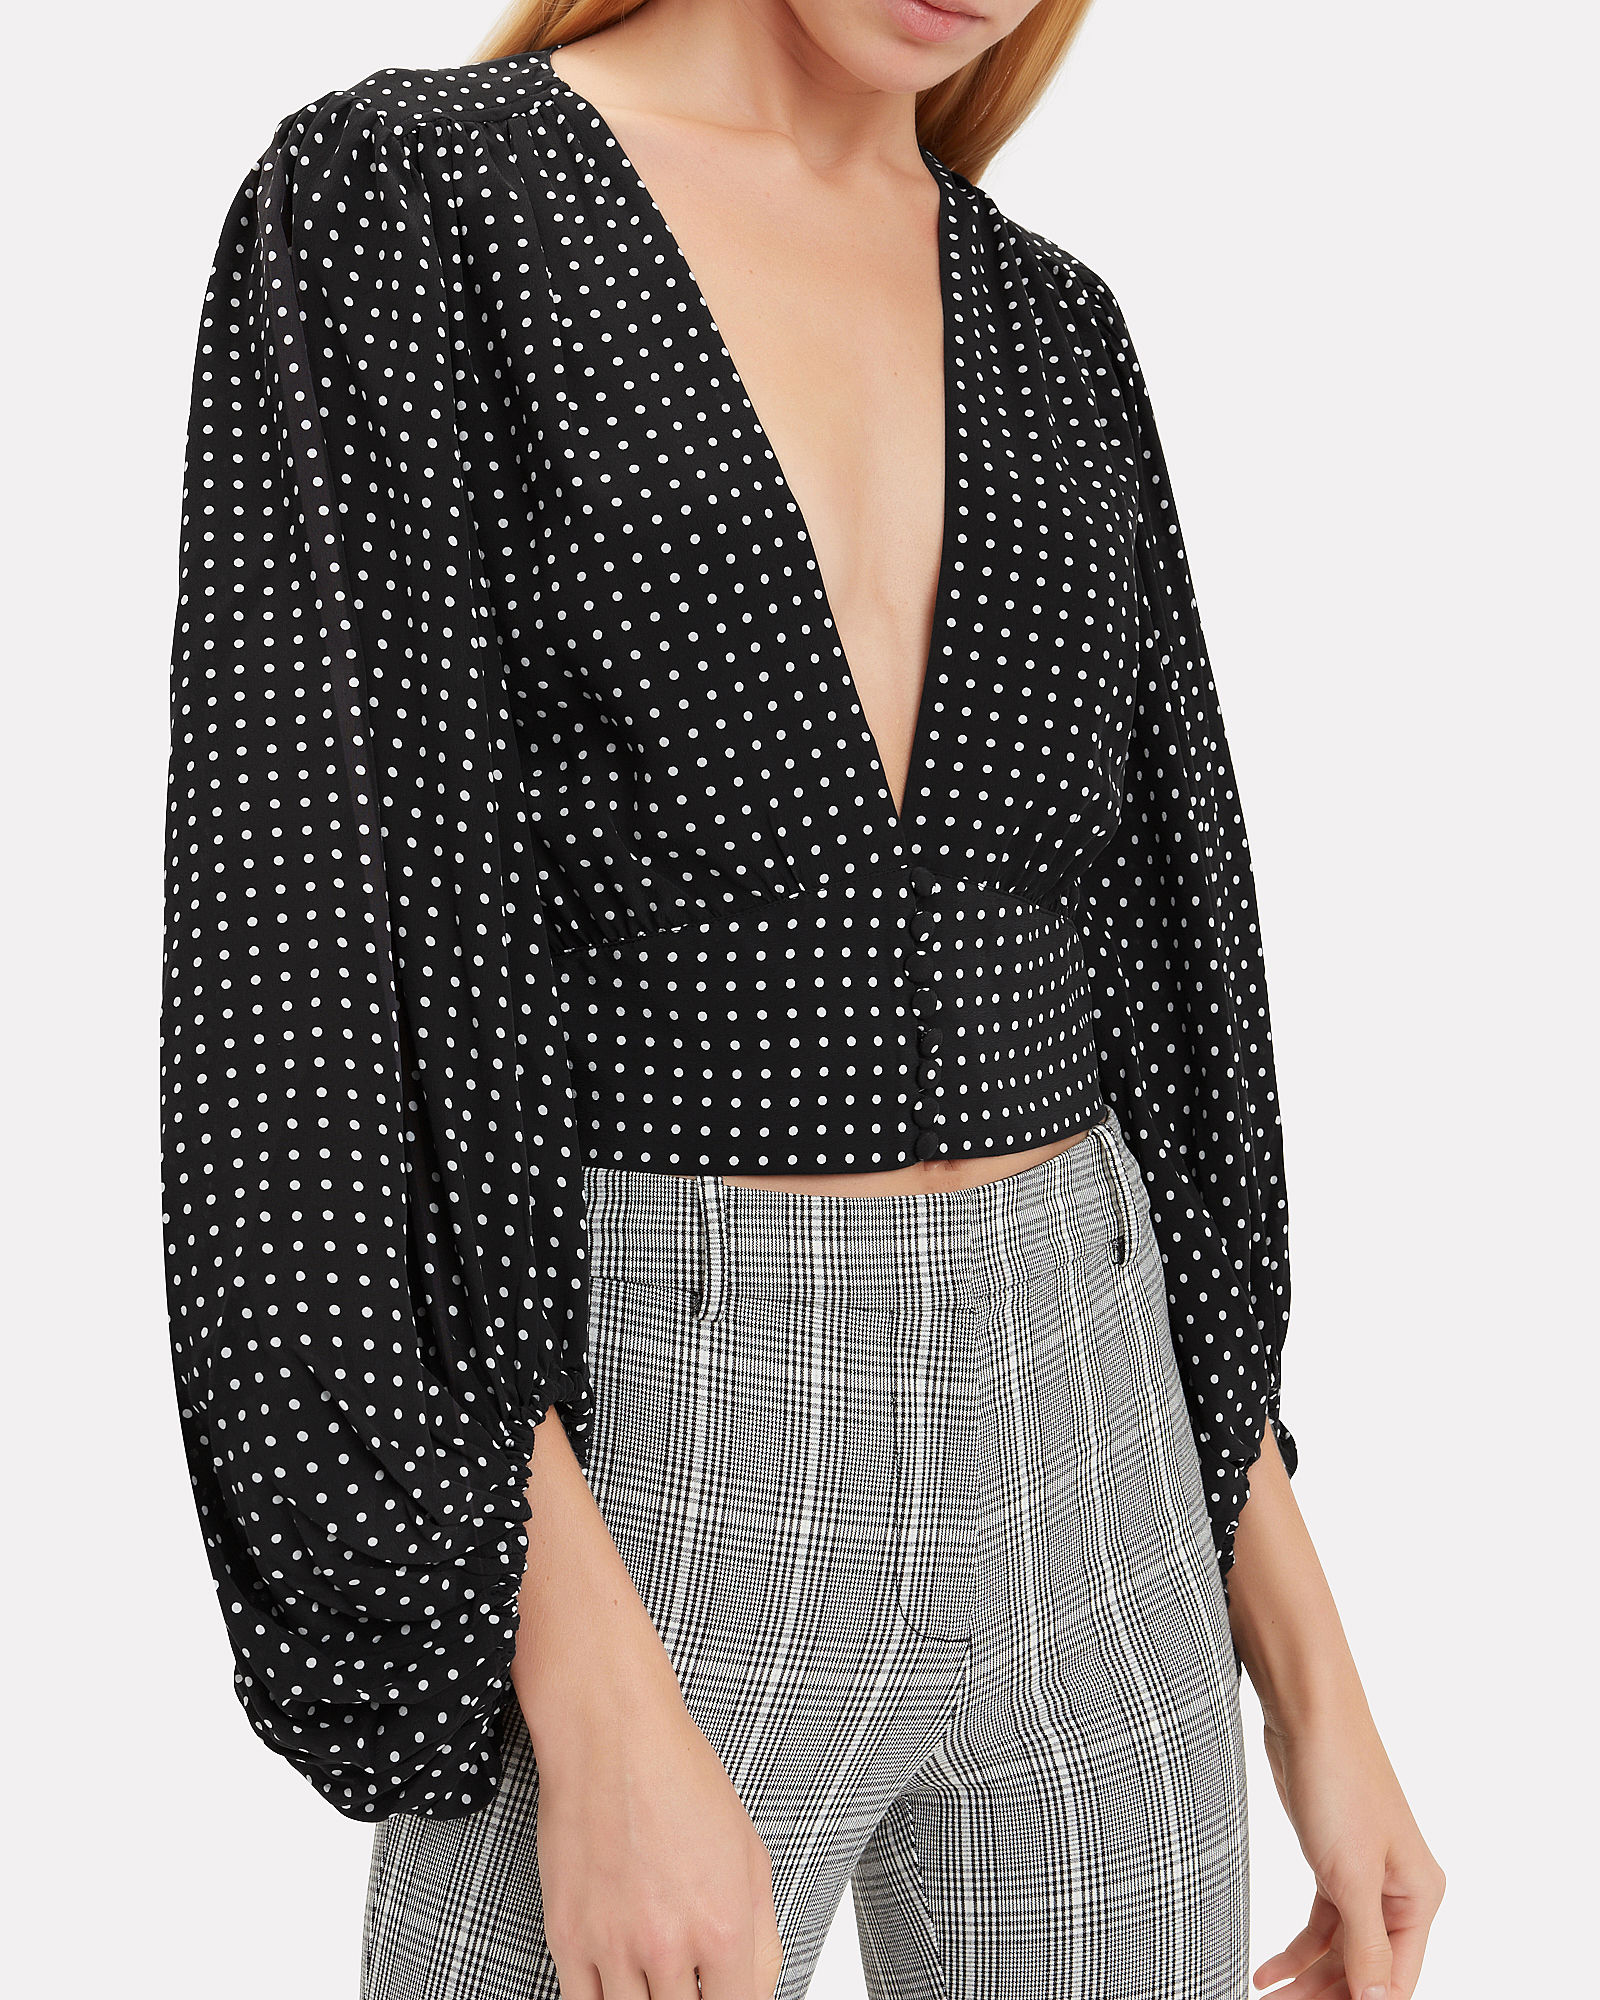 1. Must-have tops - From Monday to Sunday, this top will take you everywhere.